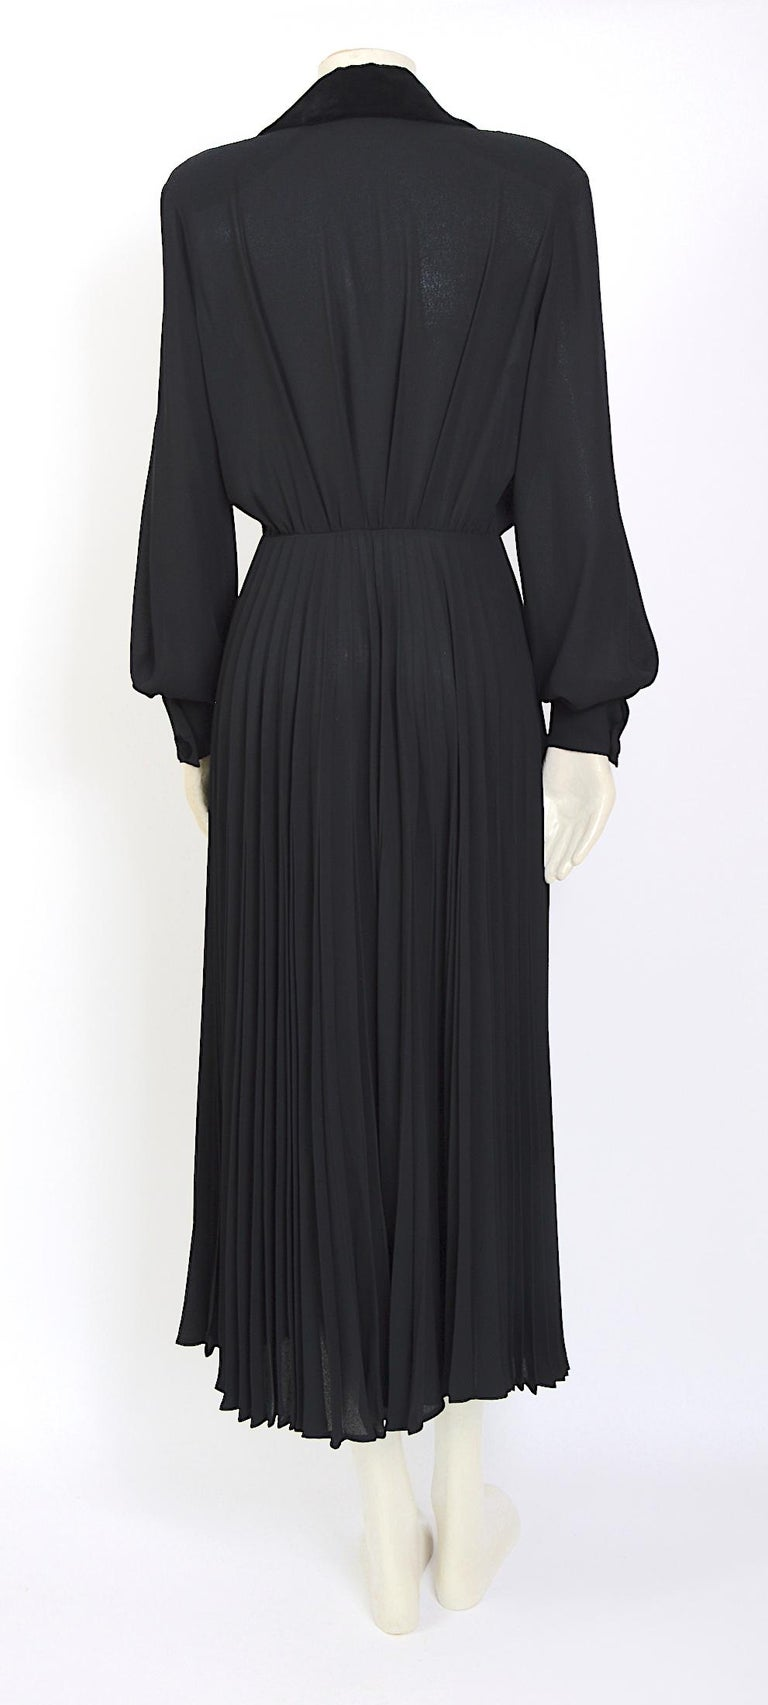 Thierry Mugler couture vintage 1980s black silk crepe and velvet details dress In Excellent Condition For Sale In Antwerp, BE